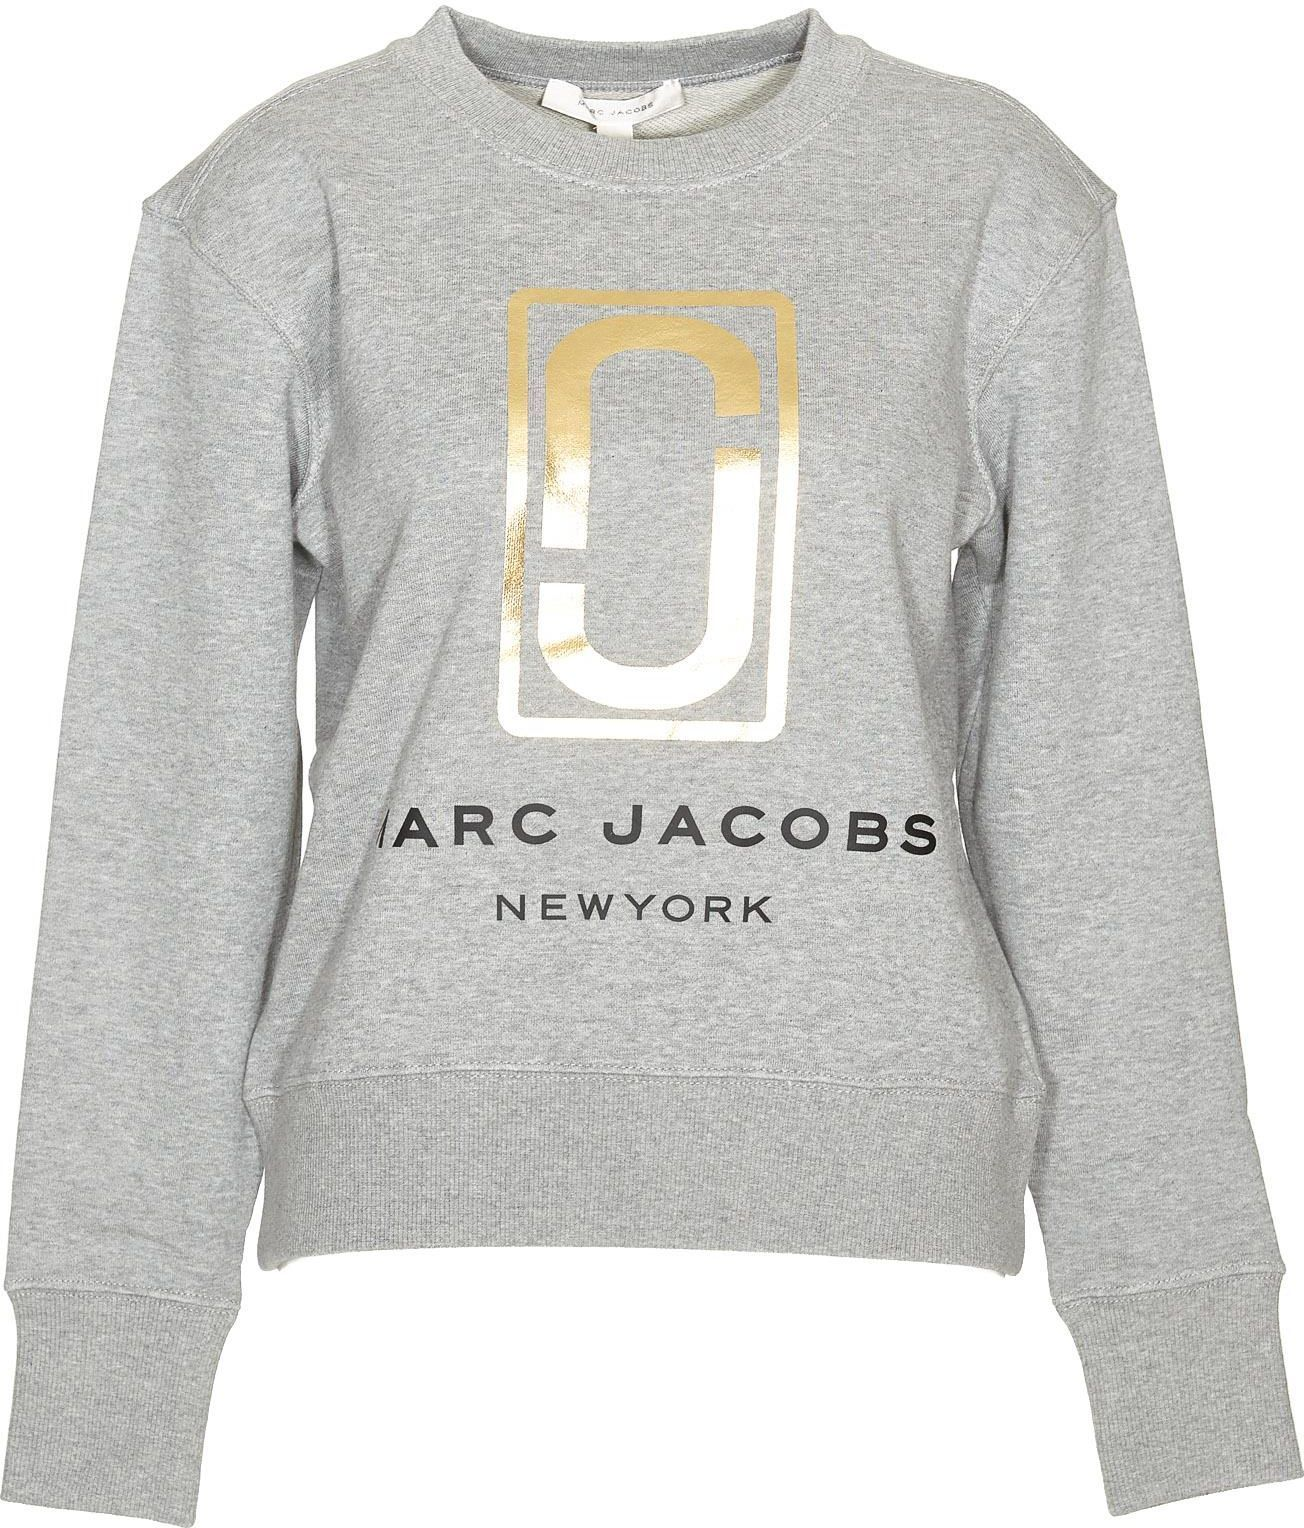 Marc Jacobs◆AW17/18センス抜群 トレーナー